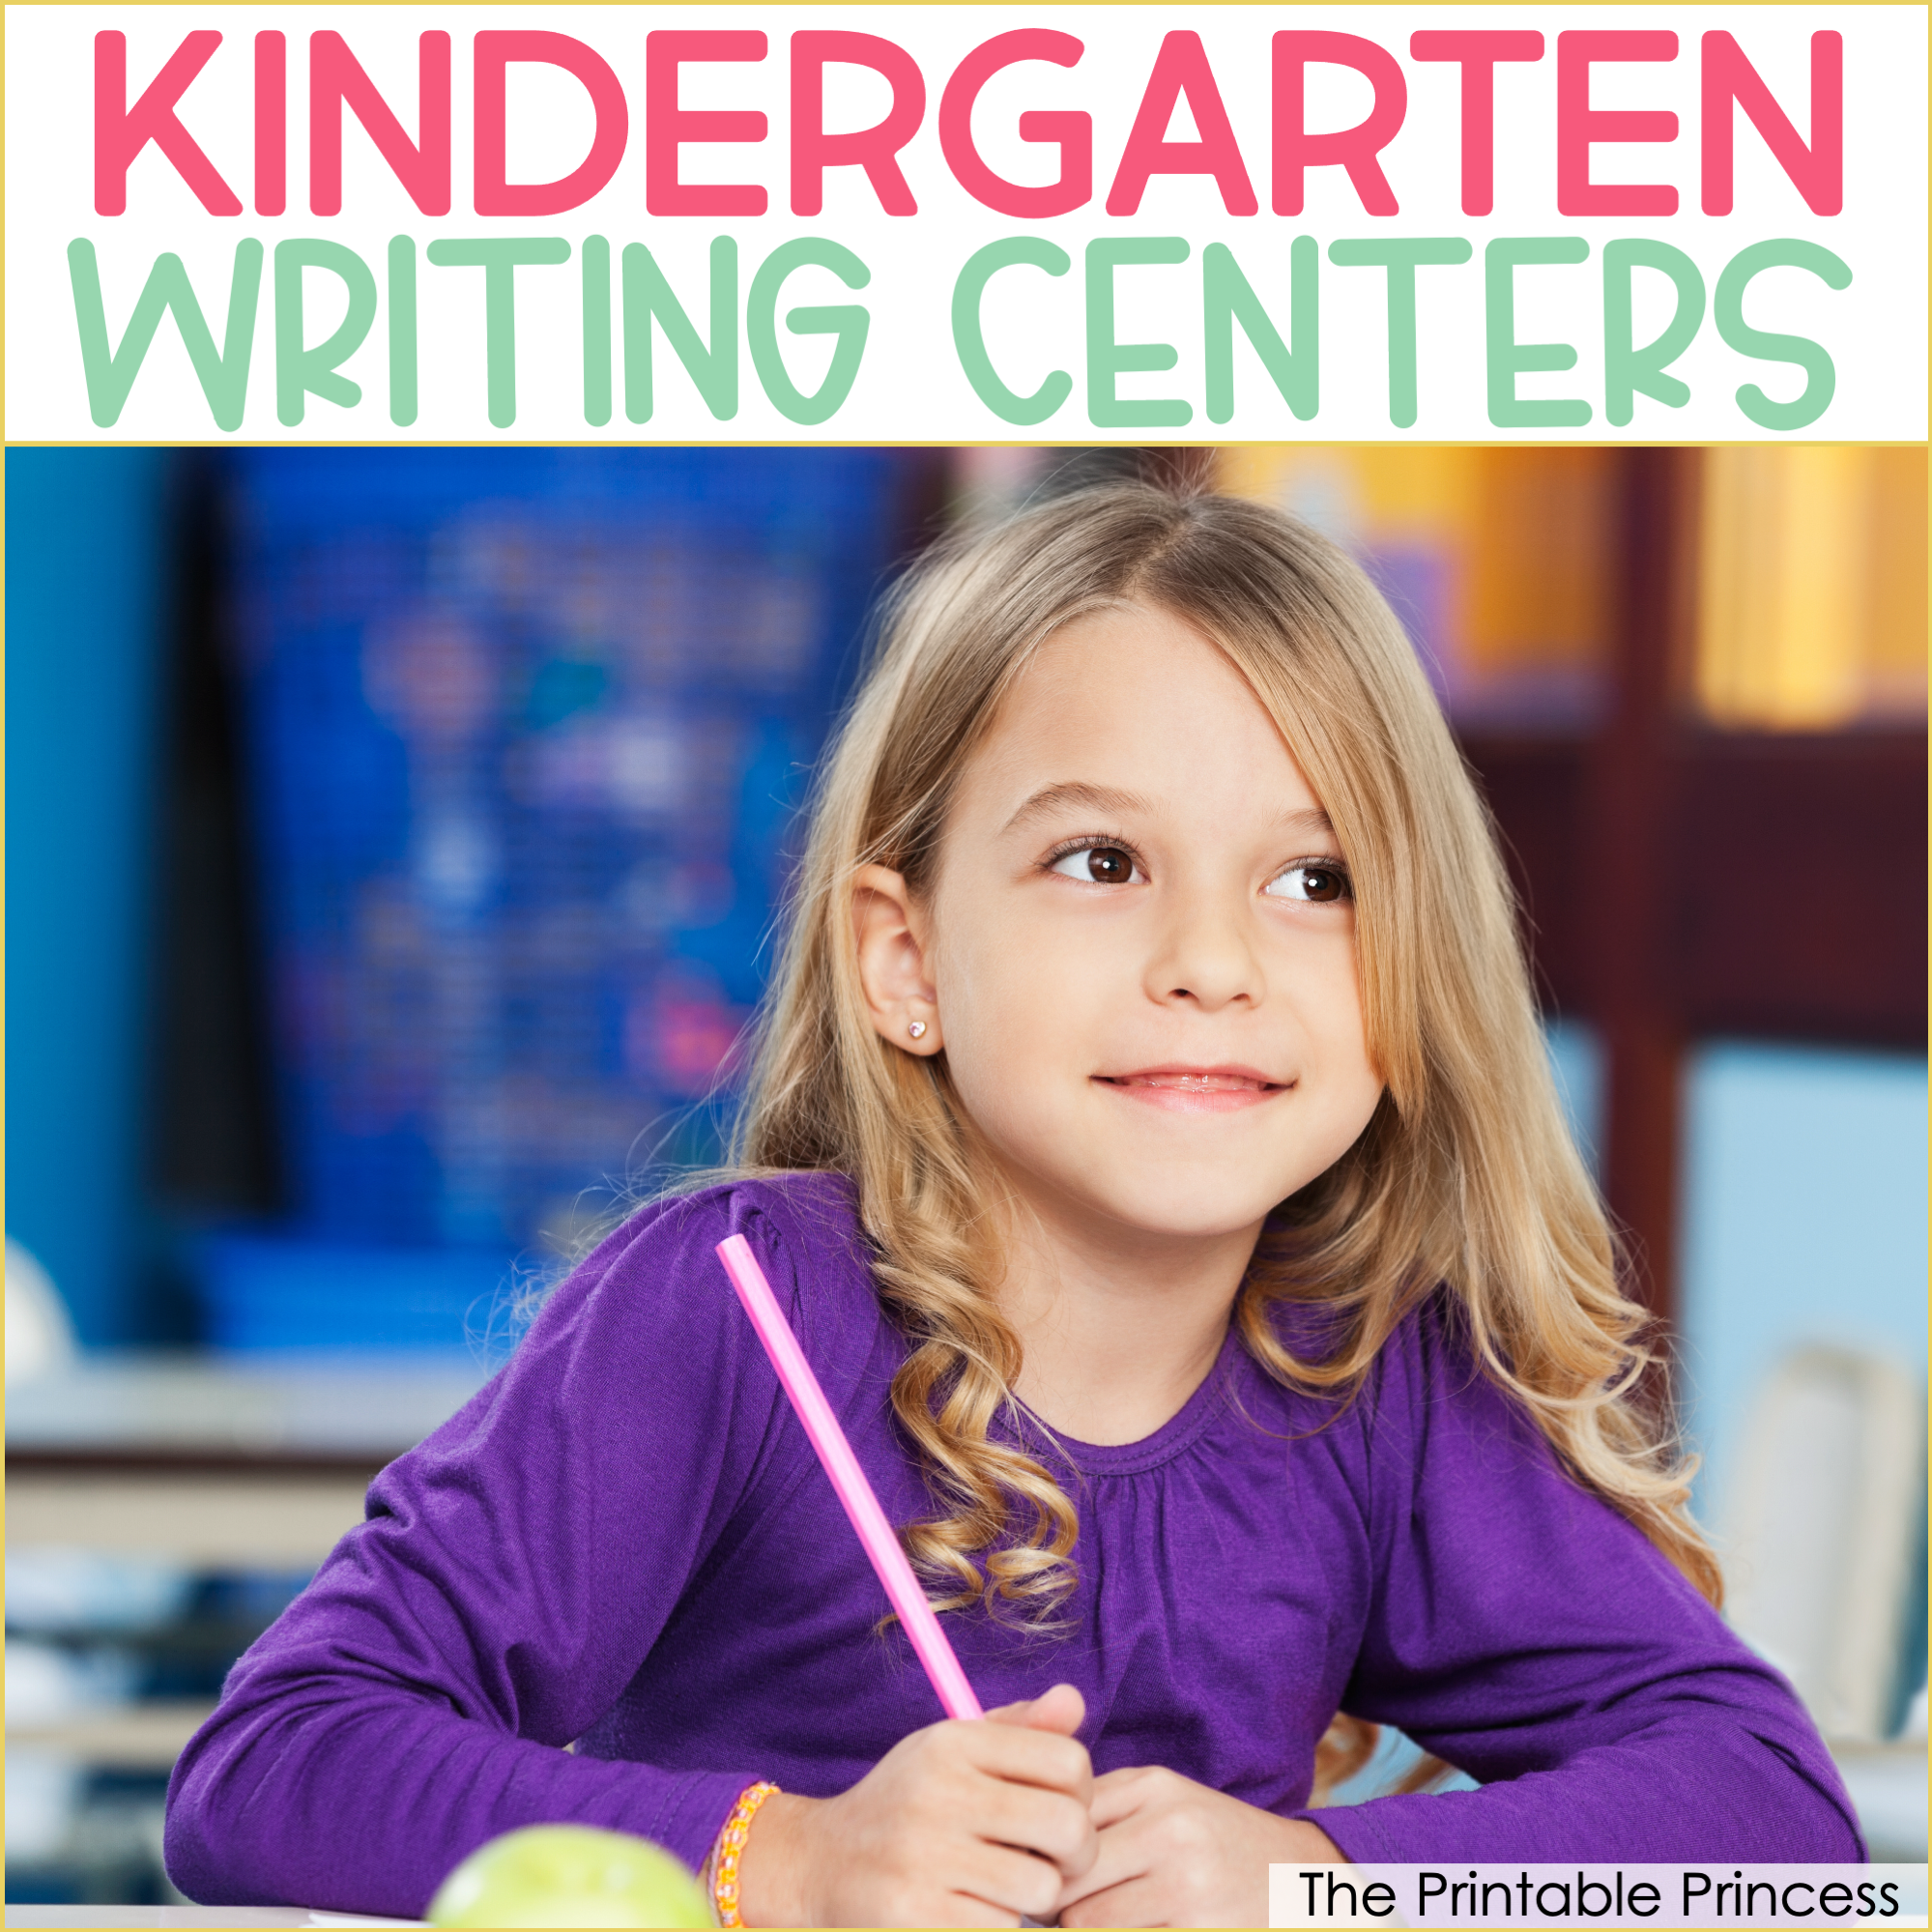 Getting Started With Writing Centers in Kindergarten